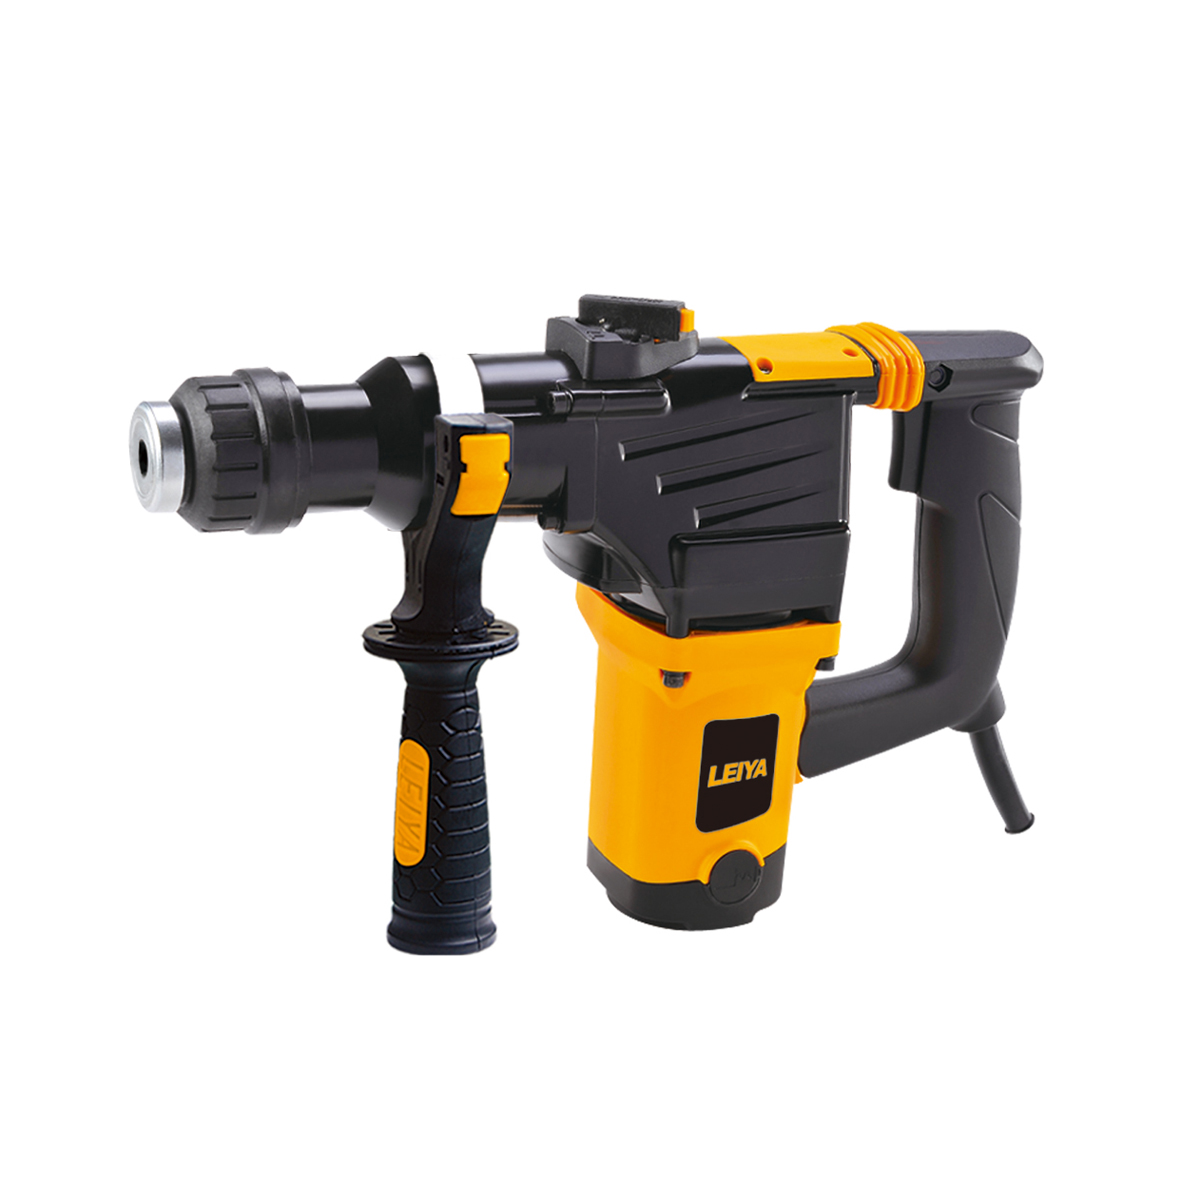 26mm SDS Plus Chuck Rotary Hammer With Two Function LY26-02